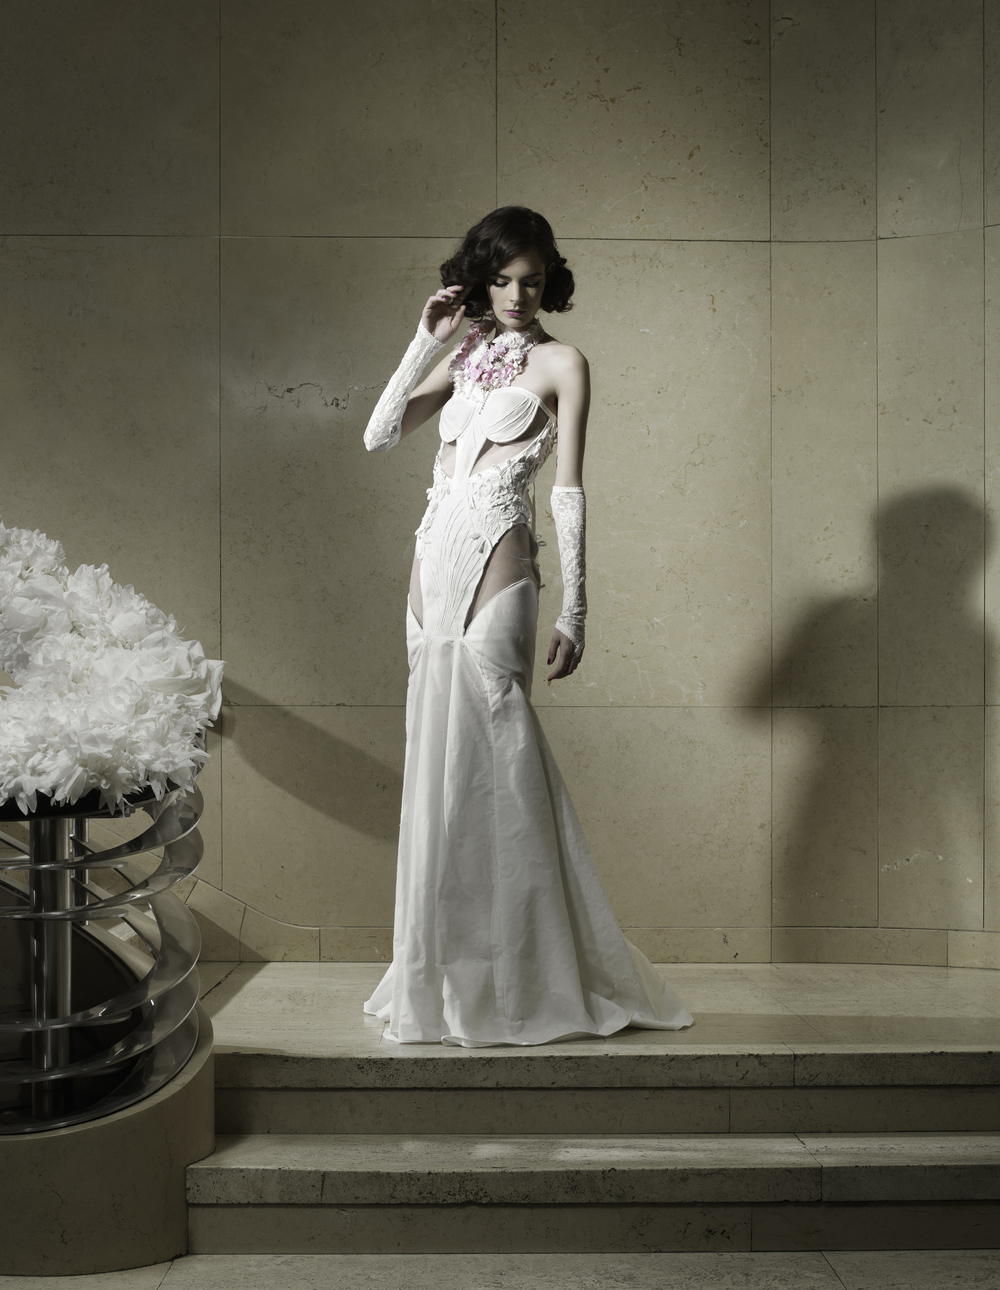 White-Cashmere-Collection-2012-Anomal-Couture-by-Sonia-Leclair-Photographer-Angus-Rowe-MacPherson.jpg